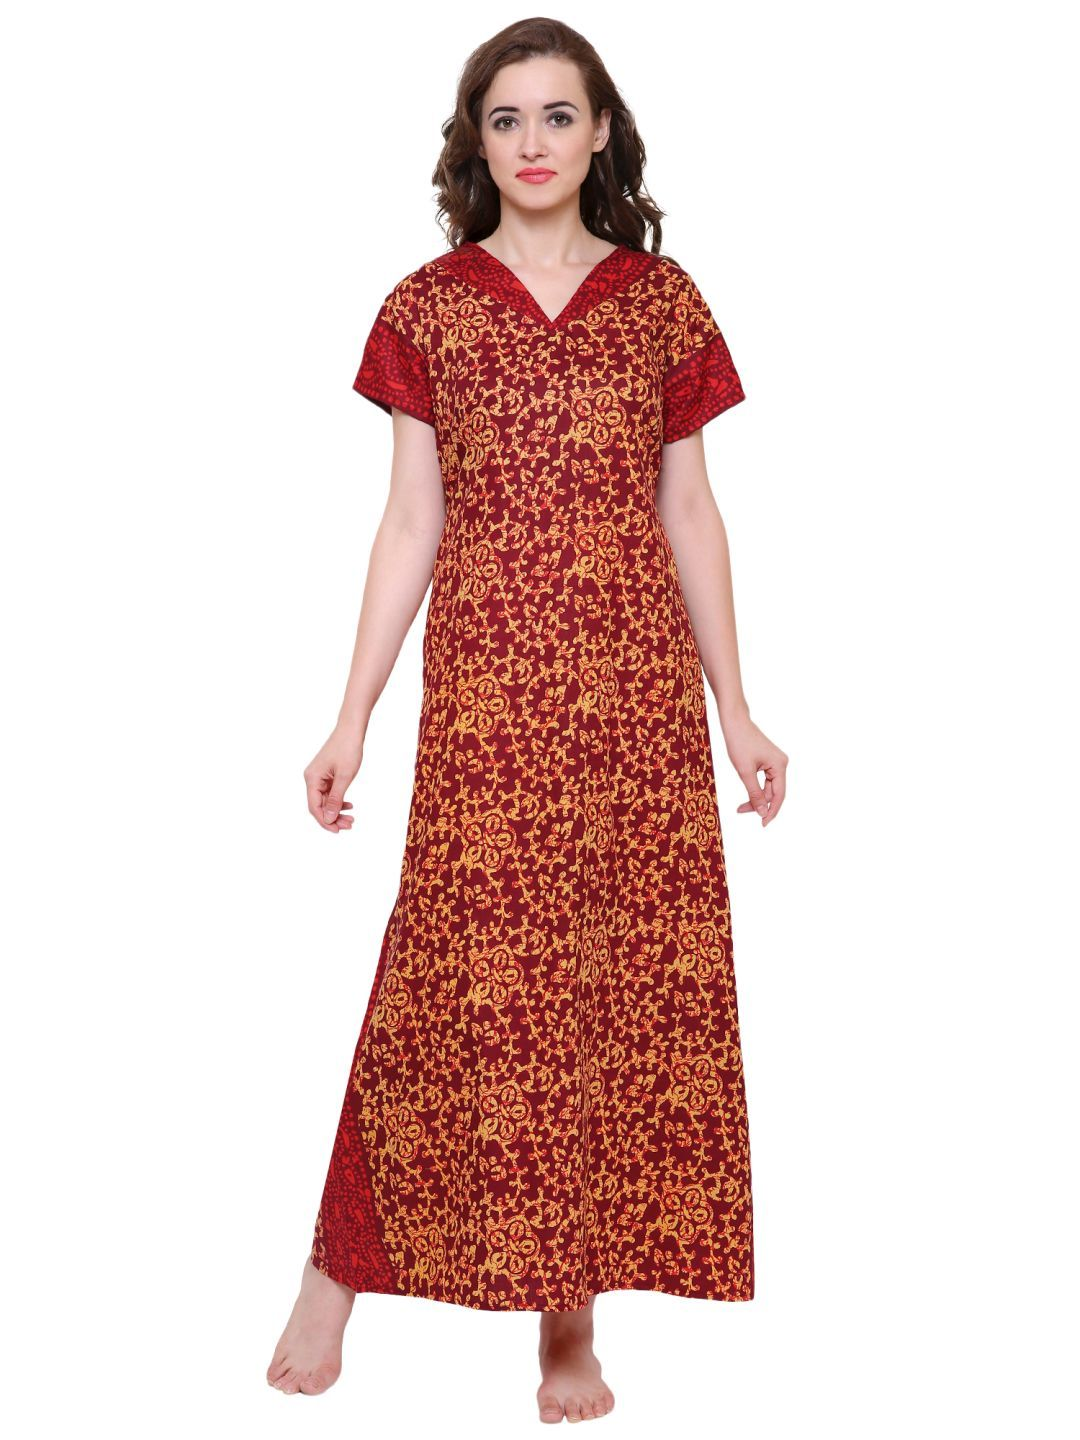 Klamotten_long nightdress_DS03M60